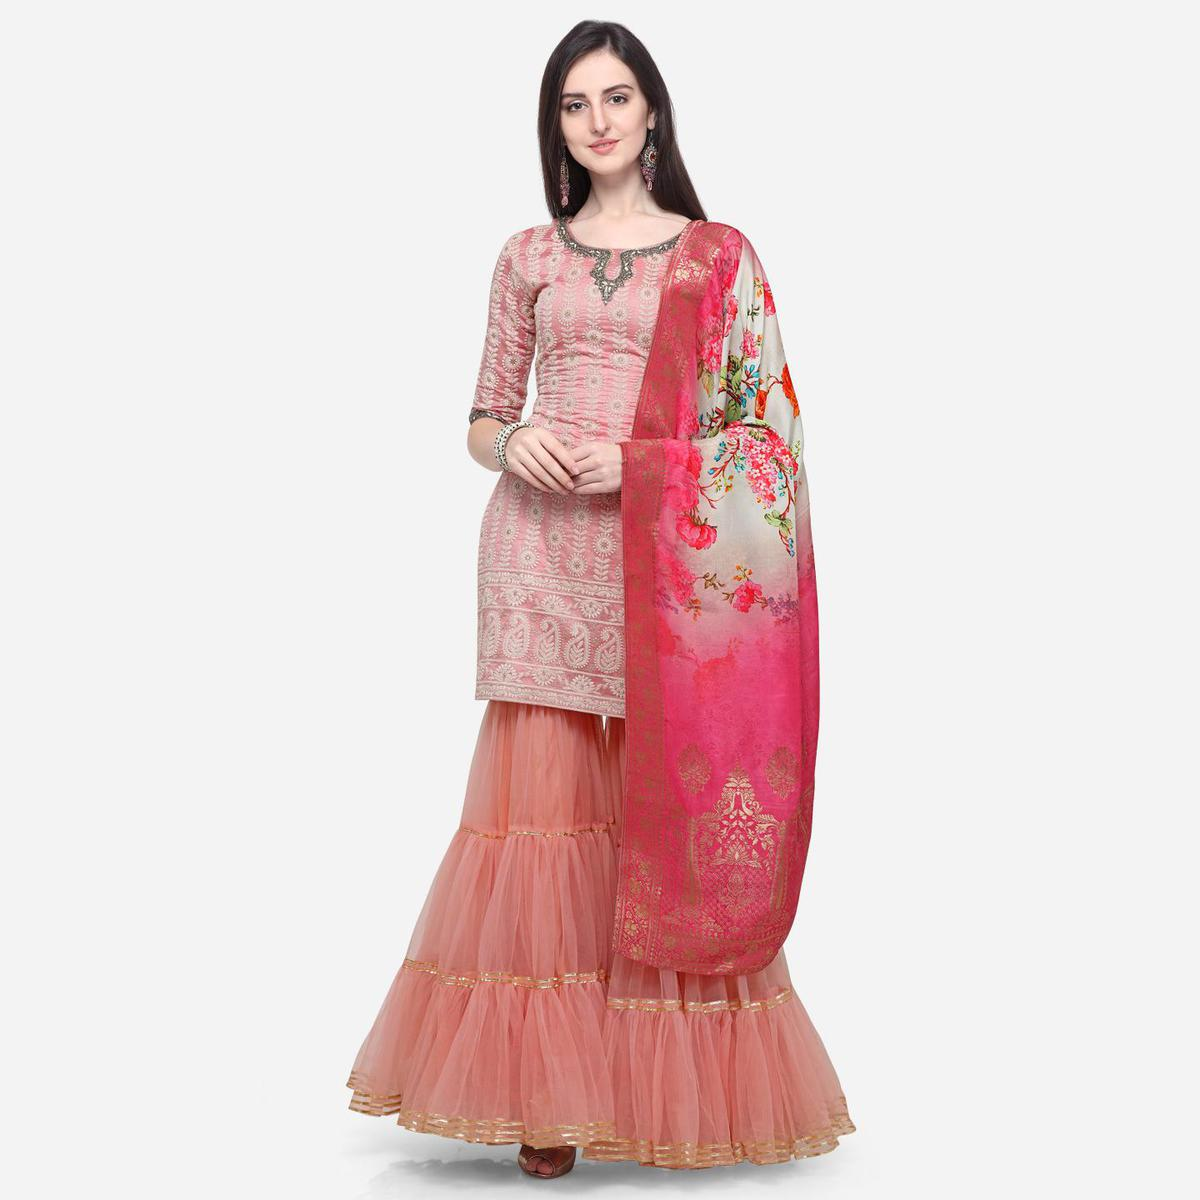 Stylee Lifestyle - Pink Colored Party Wear Embroidered Chanderi Silk Sharara Suit